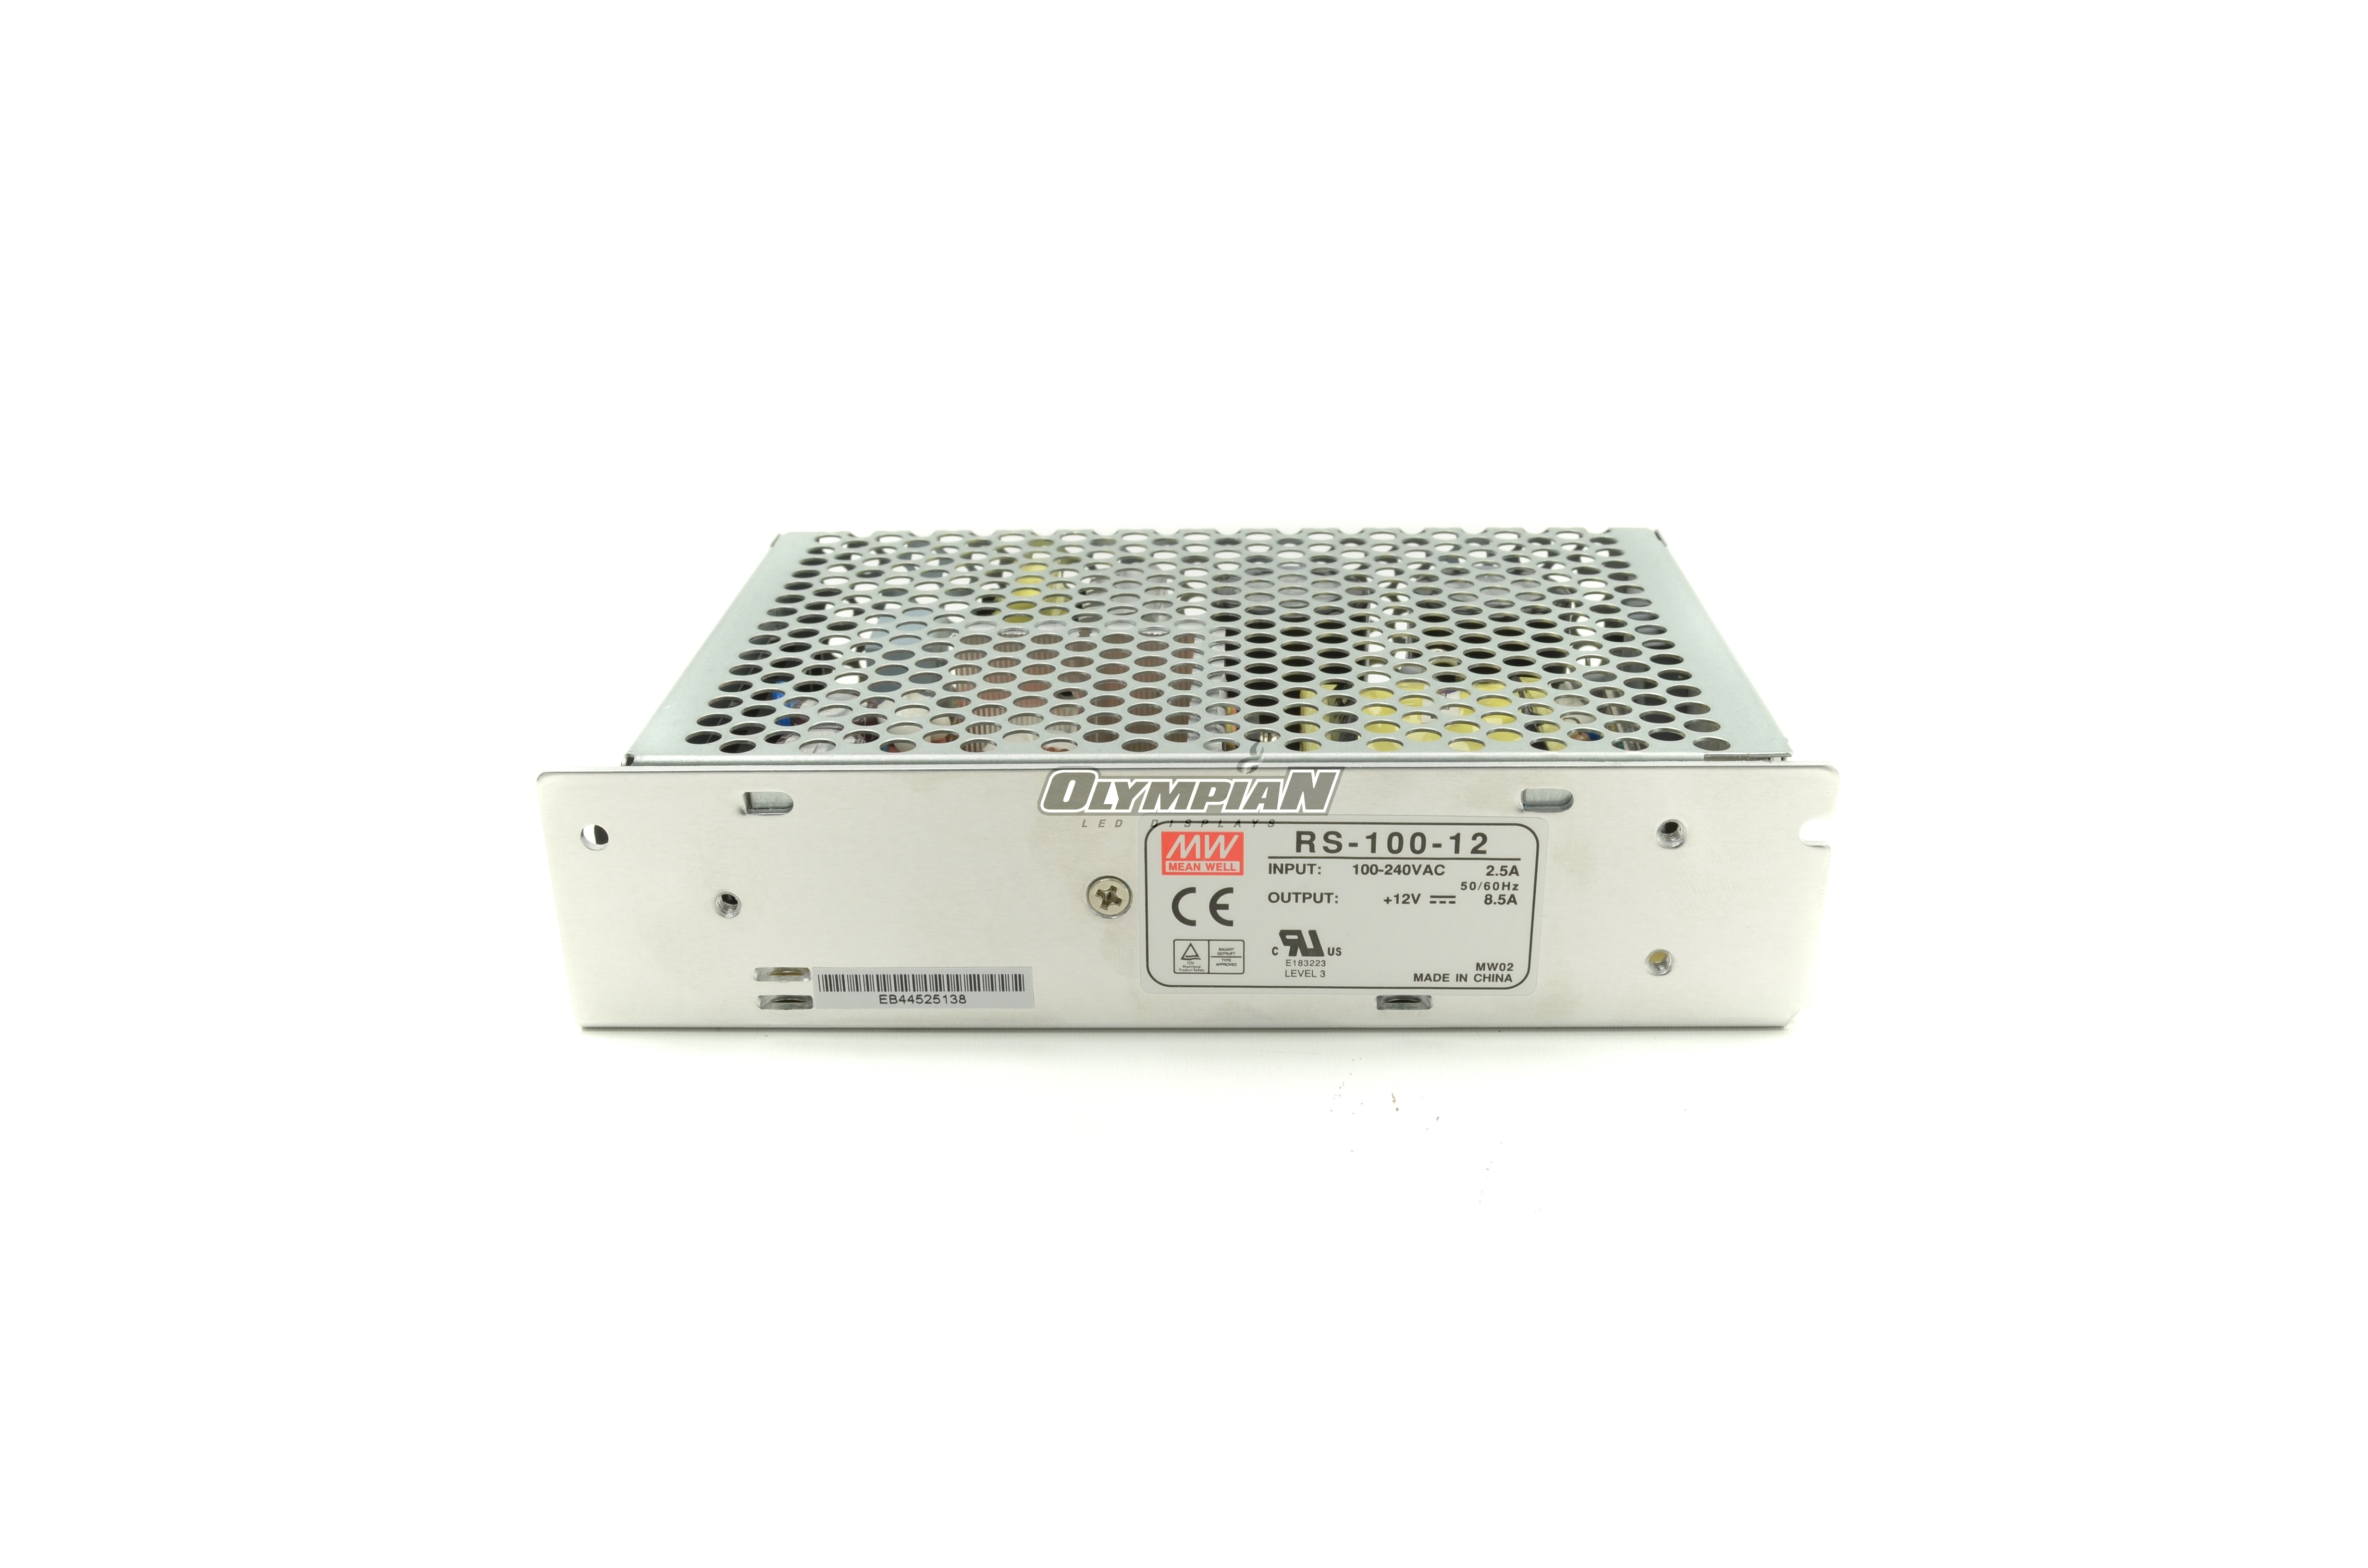 Mean Well RS-100-12 LED Power Supply